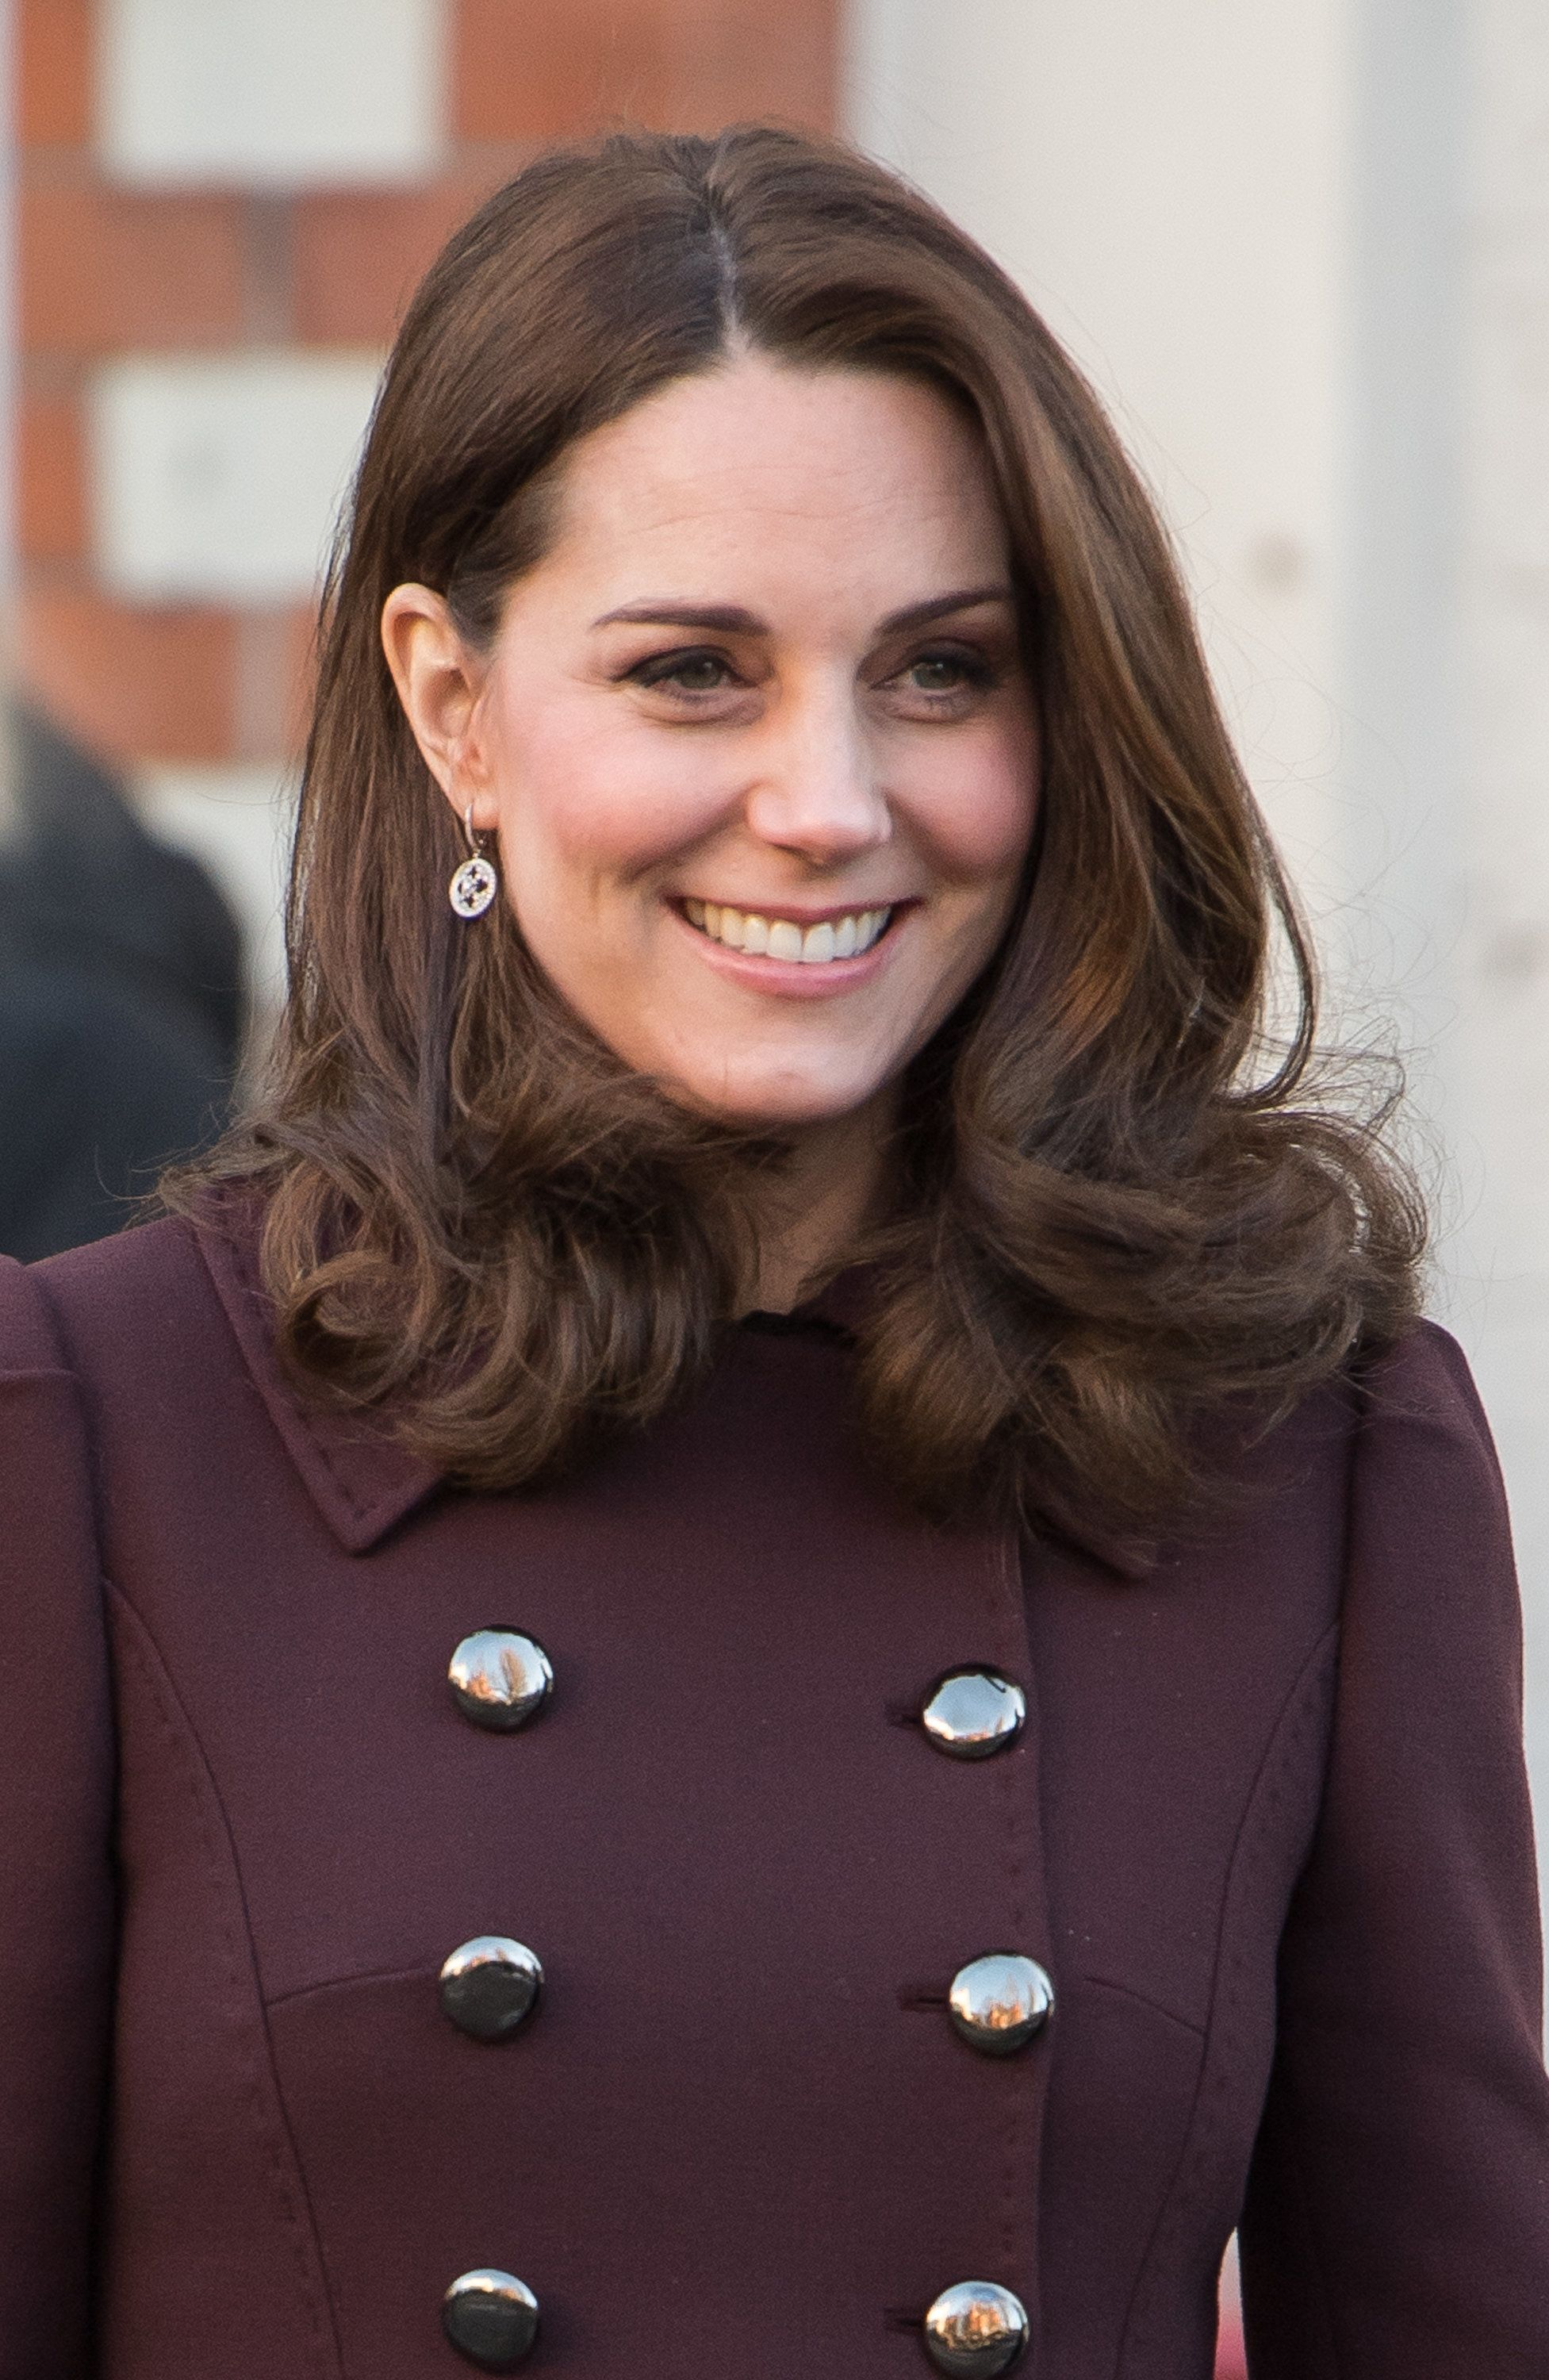 Duchess Of Cambridge Will Host A Sustainable Style Event During London Fashion